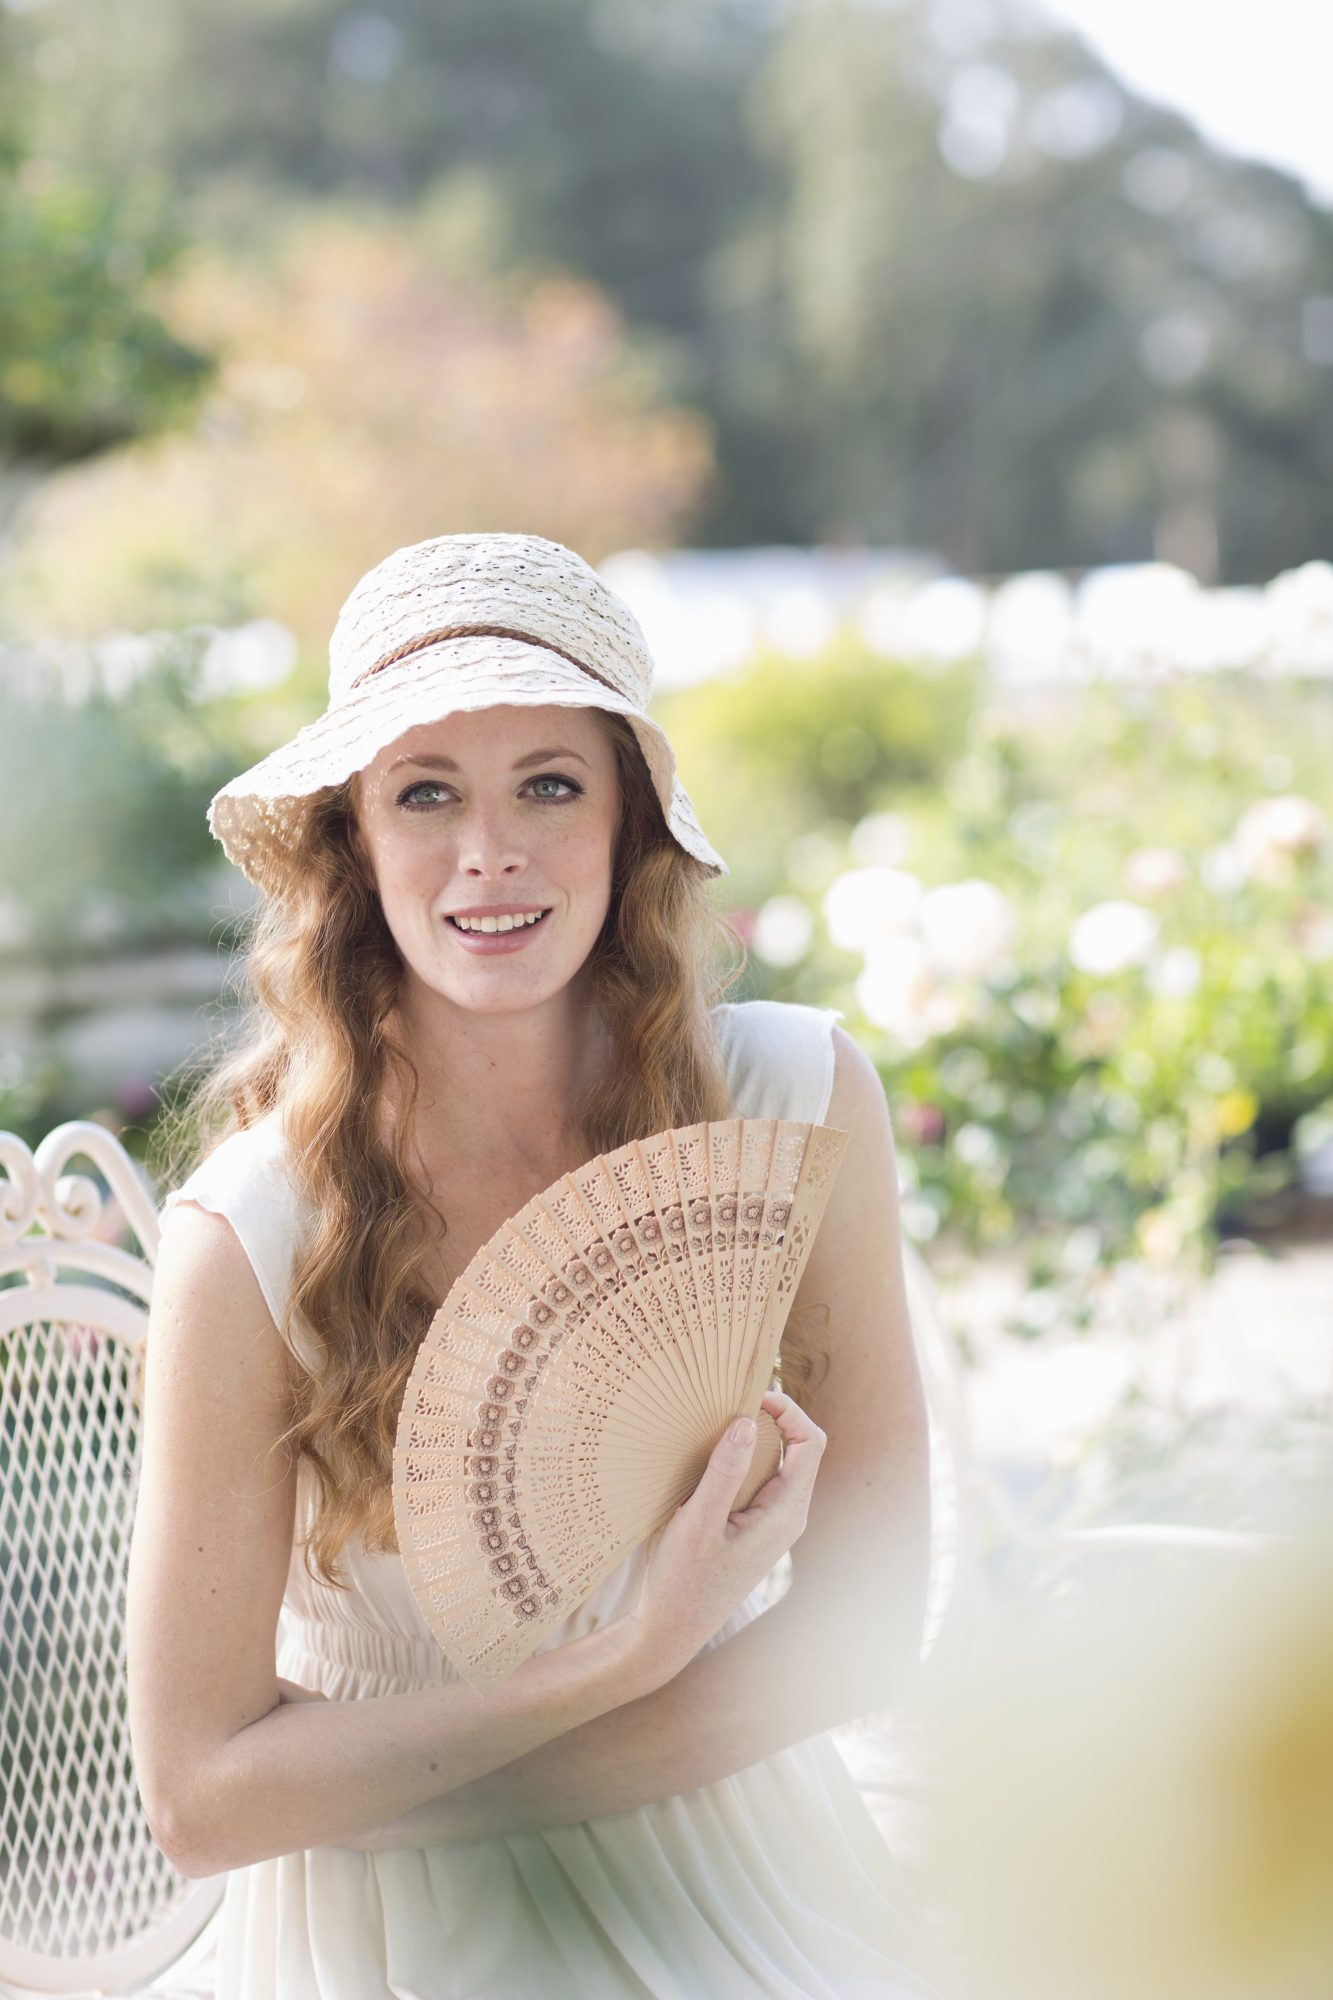 Young woman with hand fan